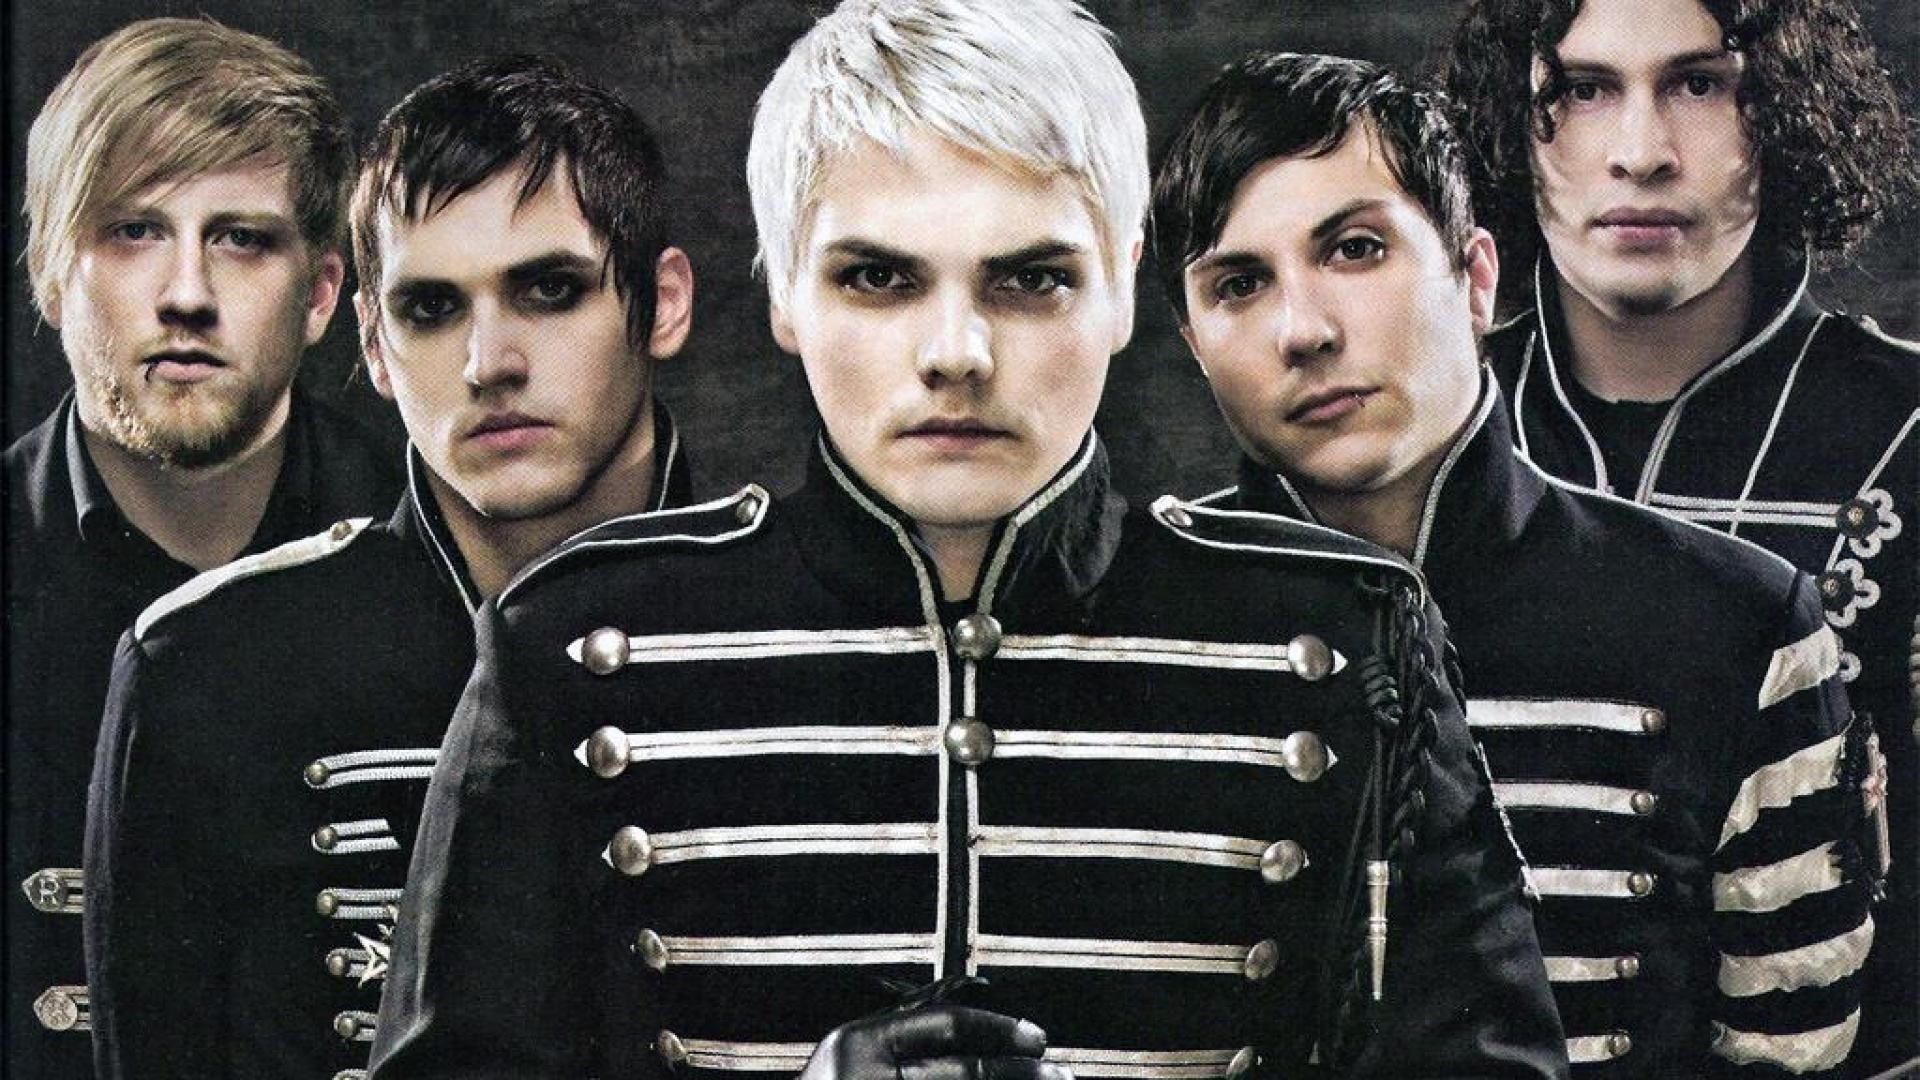 1920x1080  My Chemical Romance Backgrounds Wallpaper Cave Source ·   my chemical romance wallpapers hd